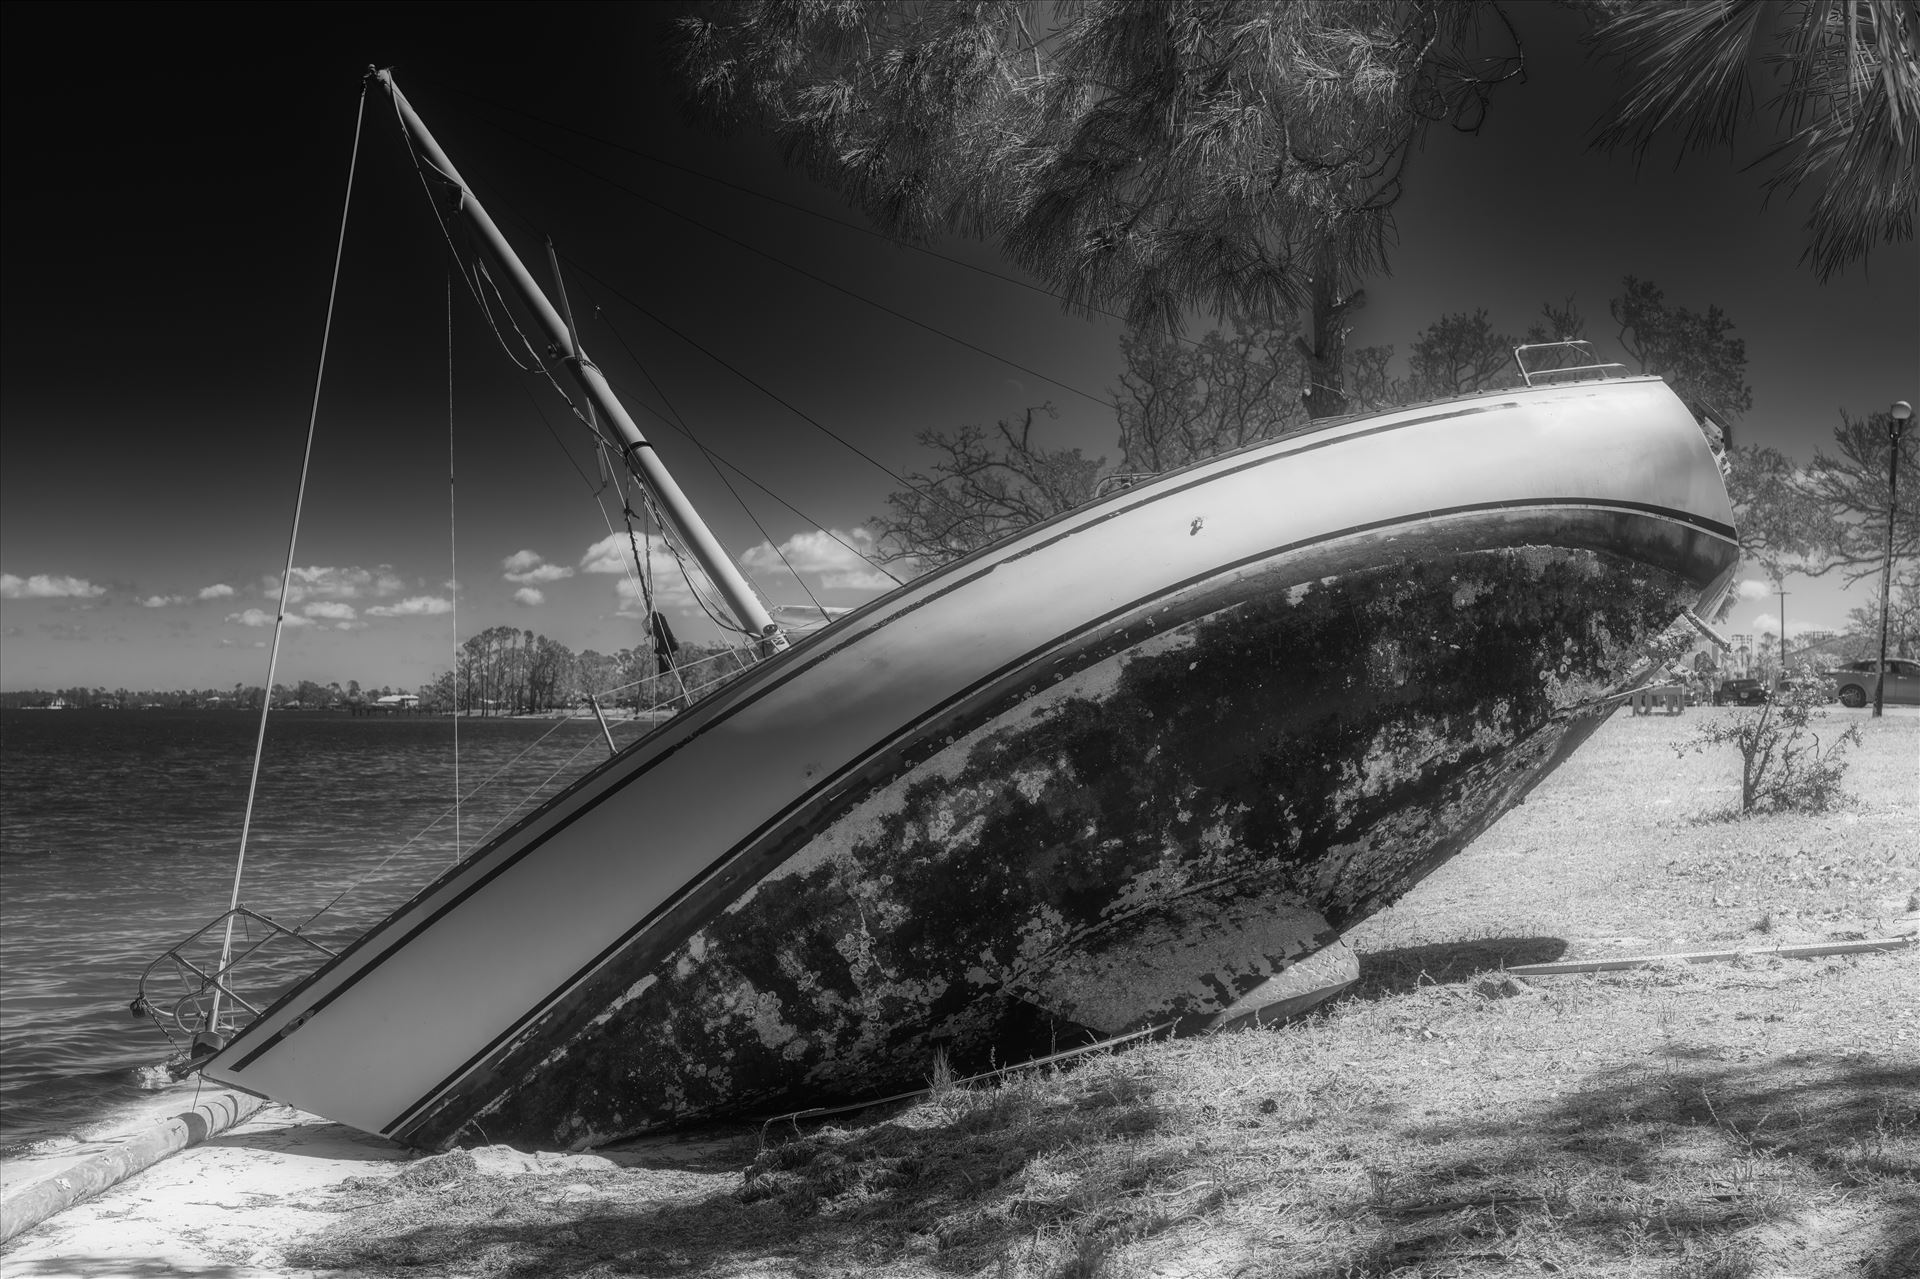 shipwreck hurricane Michael 6 months later. Boats still remain washed up on land. Panama City, Florida 04/10/2019 by Terry Kelly Photography